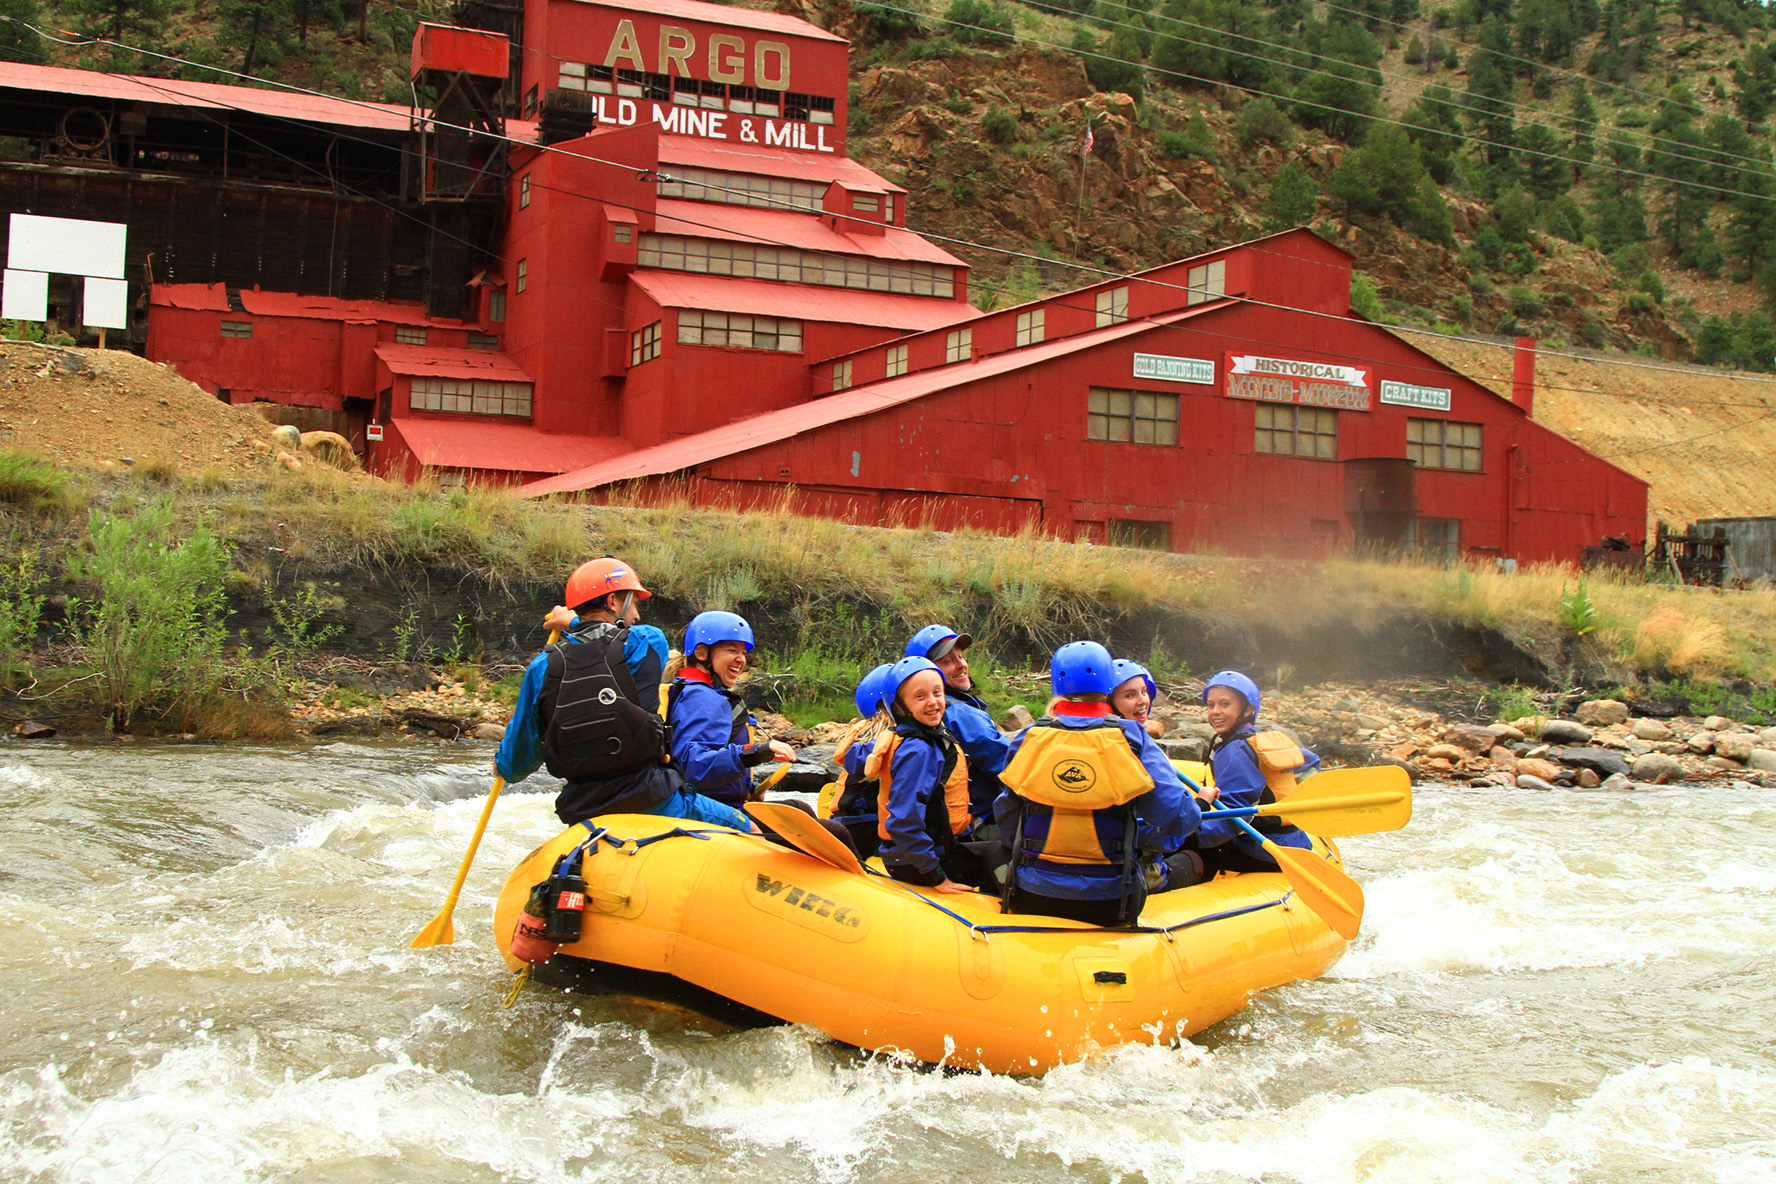 A yellow raft full of people in front of the Argo Mine in Idaho Springs, Colorado